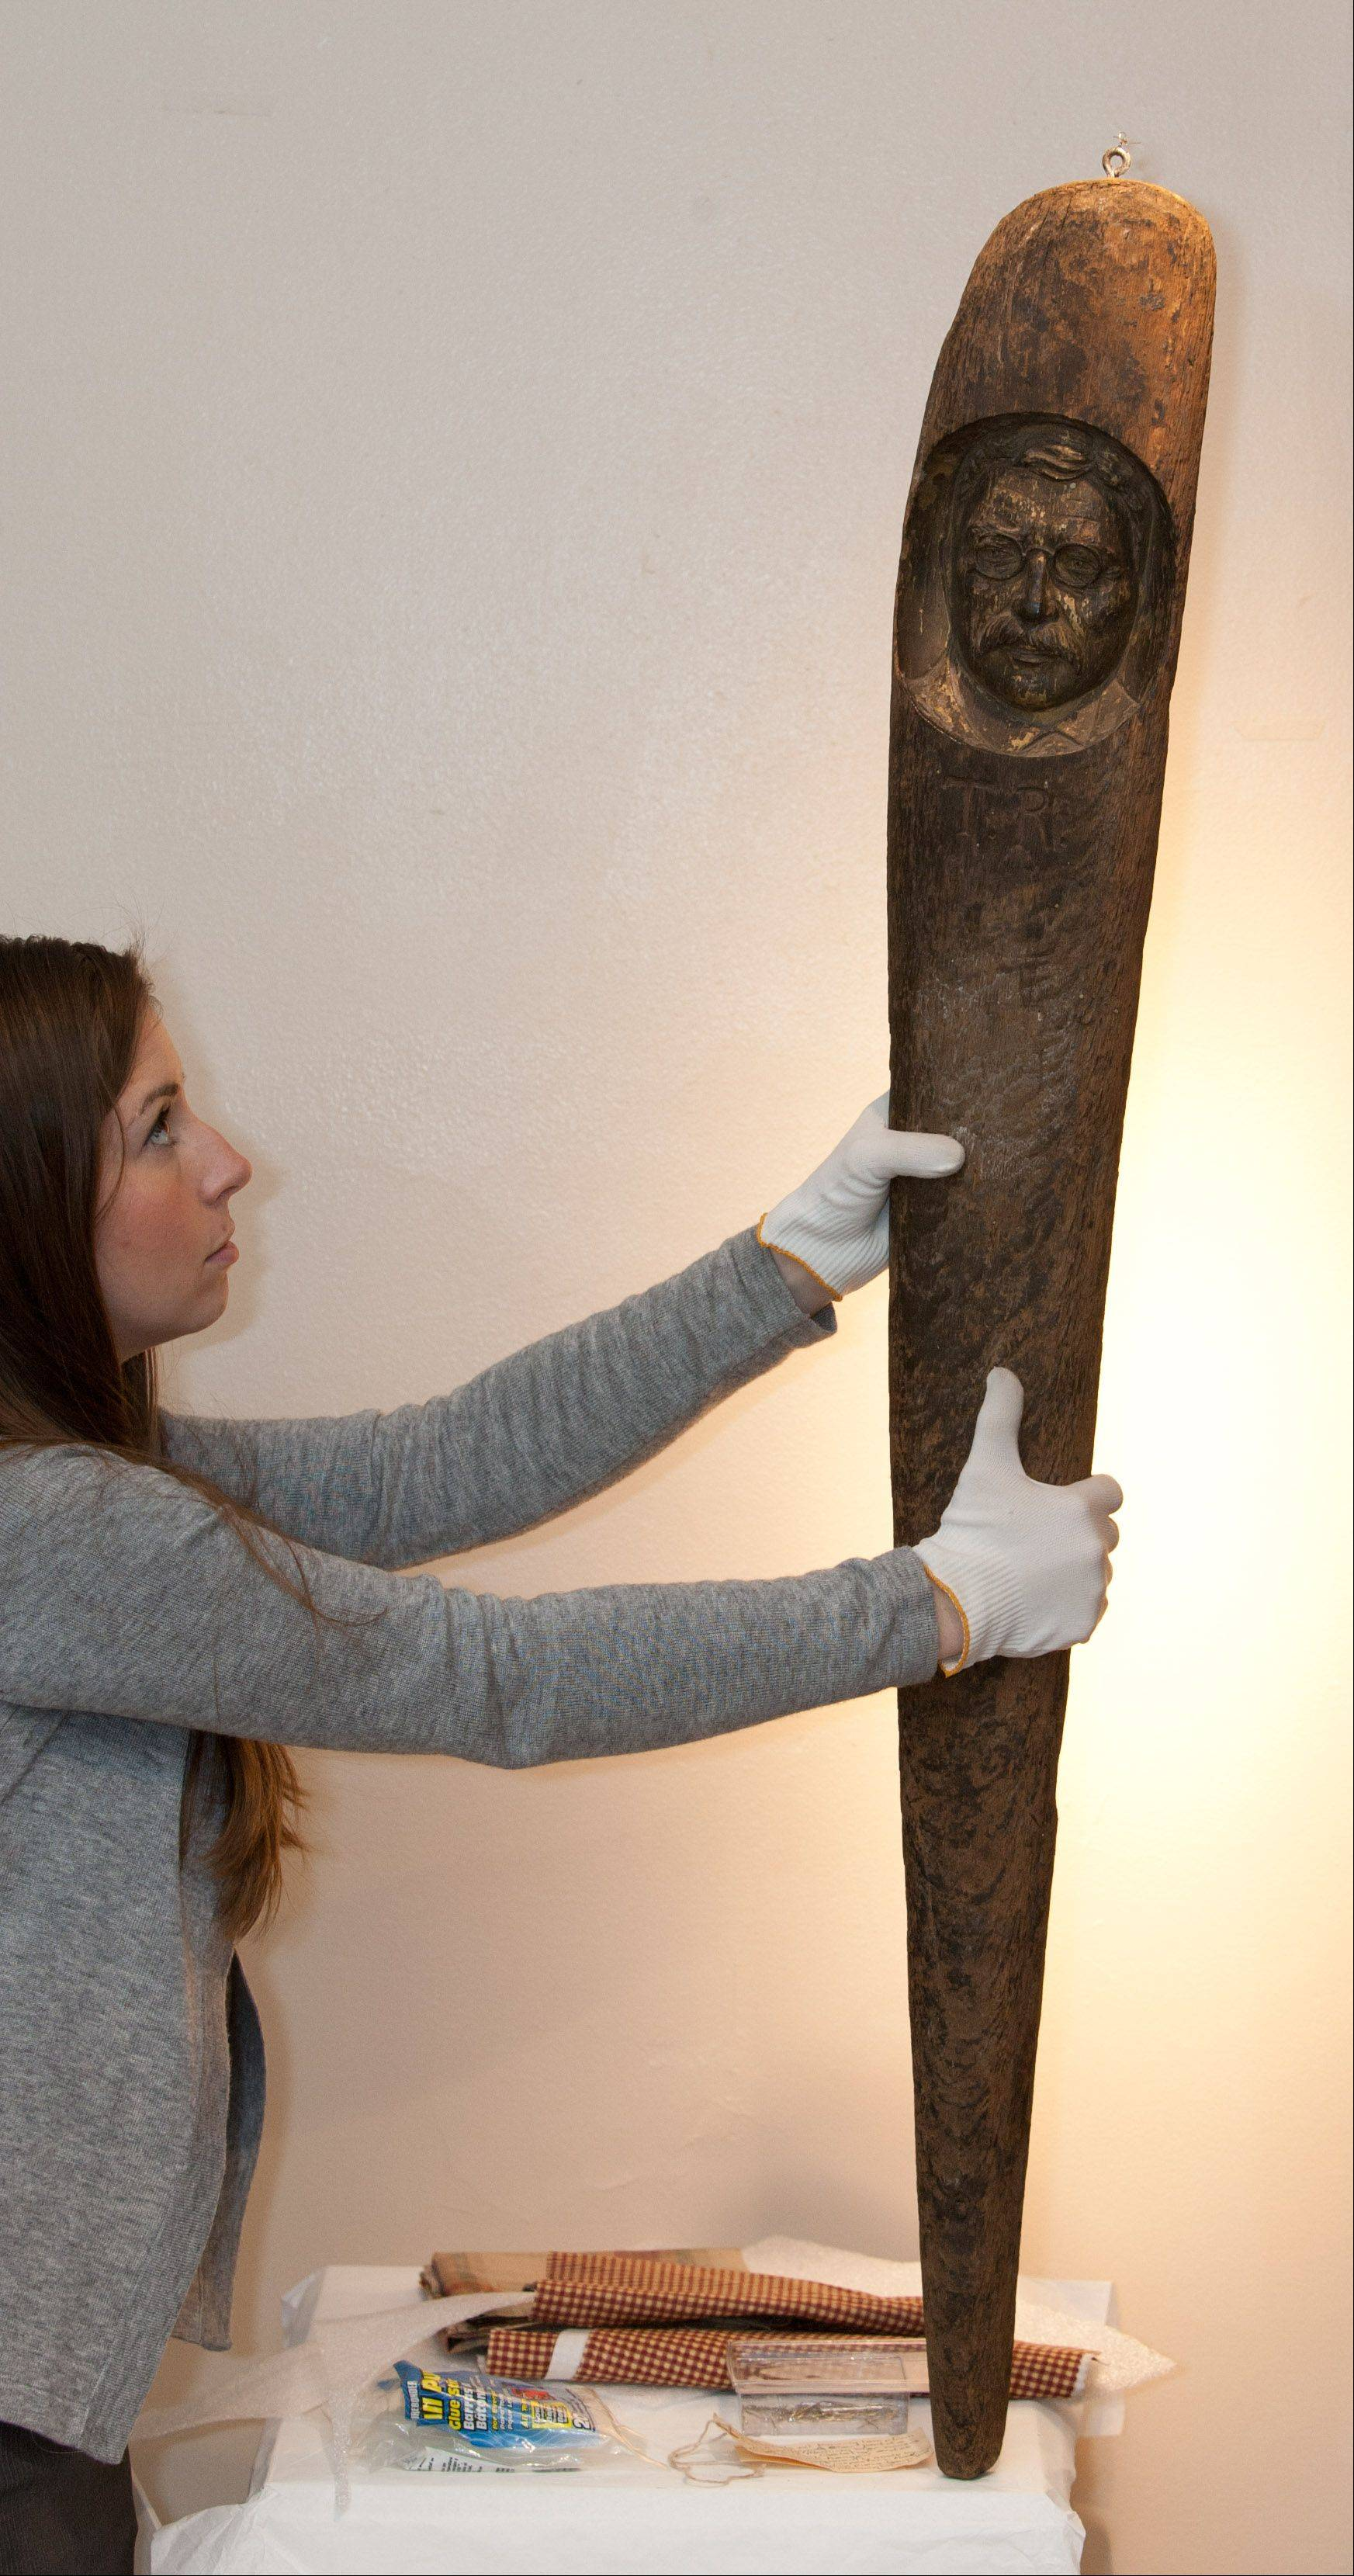 Museum curator Sara Arnas holds up a hand-carved Teddy Roosevelt walking stick on loan from the Aurora Historical Society. The walking stick commemorates Roosevelt's visit to Aurora and is an example of folk art with a political theme.